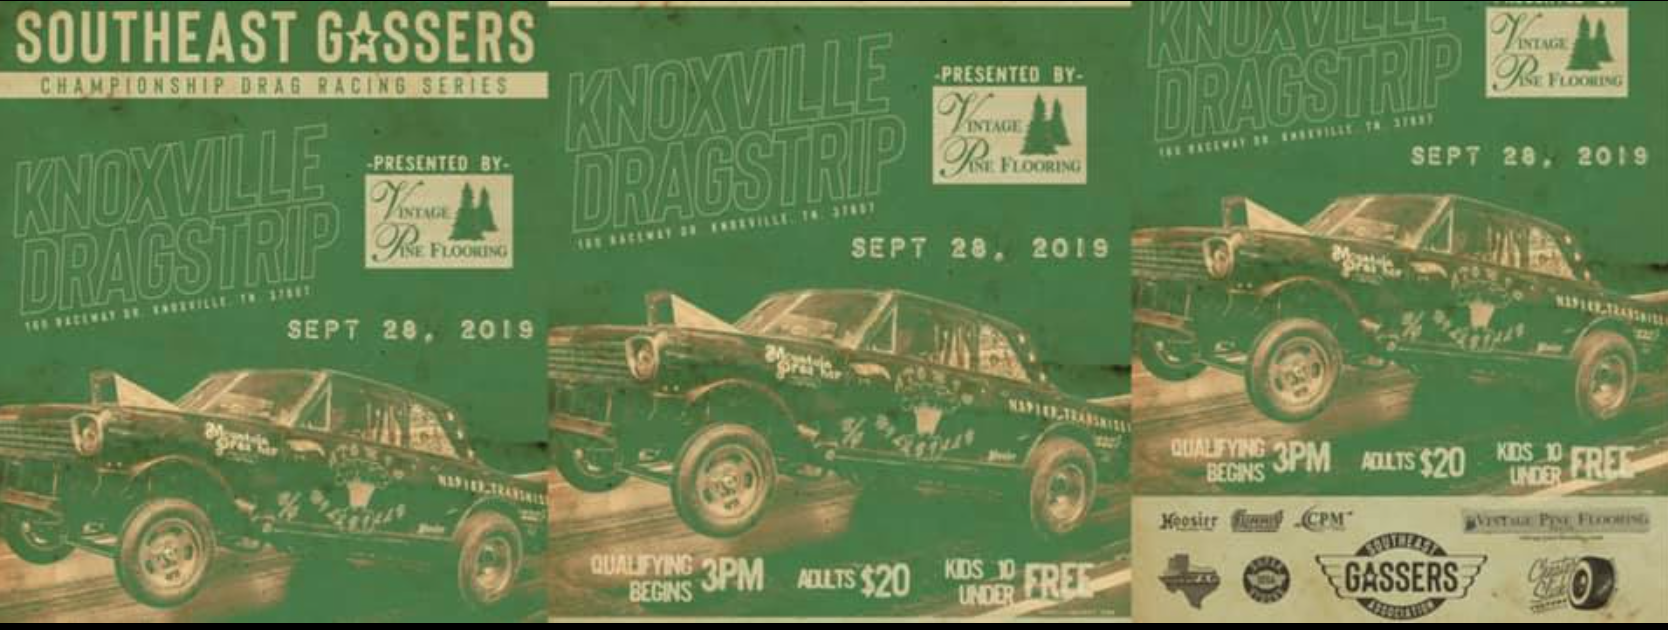 Knoxville Dragway